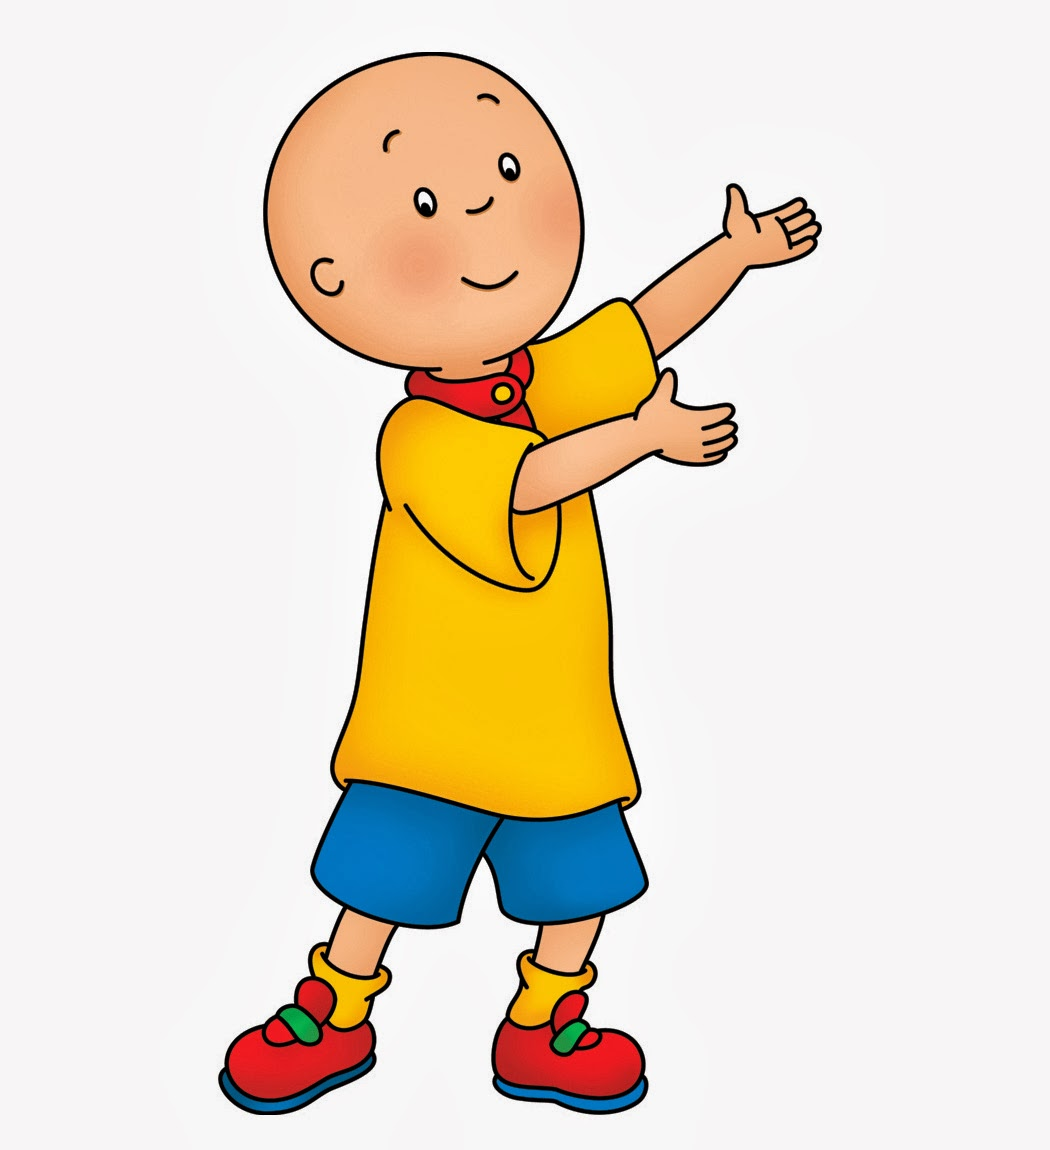 cartoon characters caillou pictures cailloux clipart caillou clipart